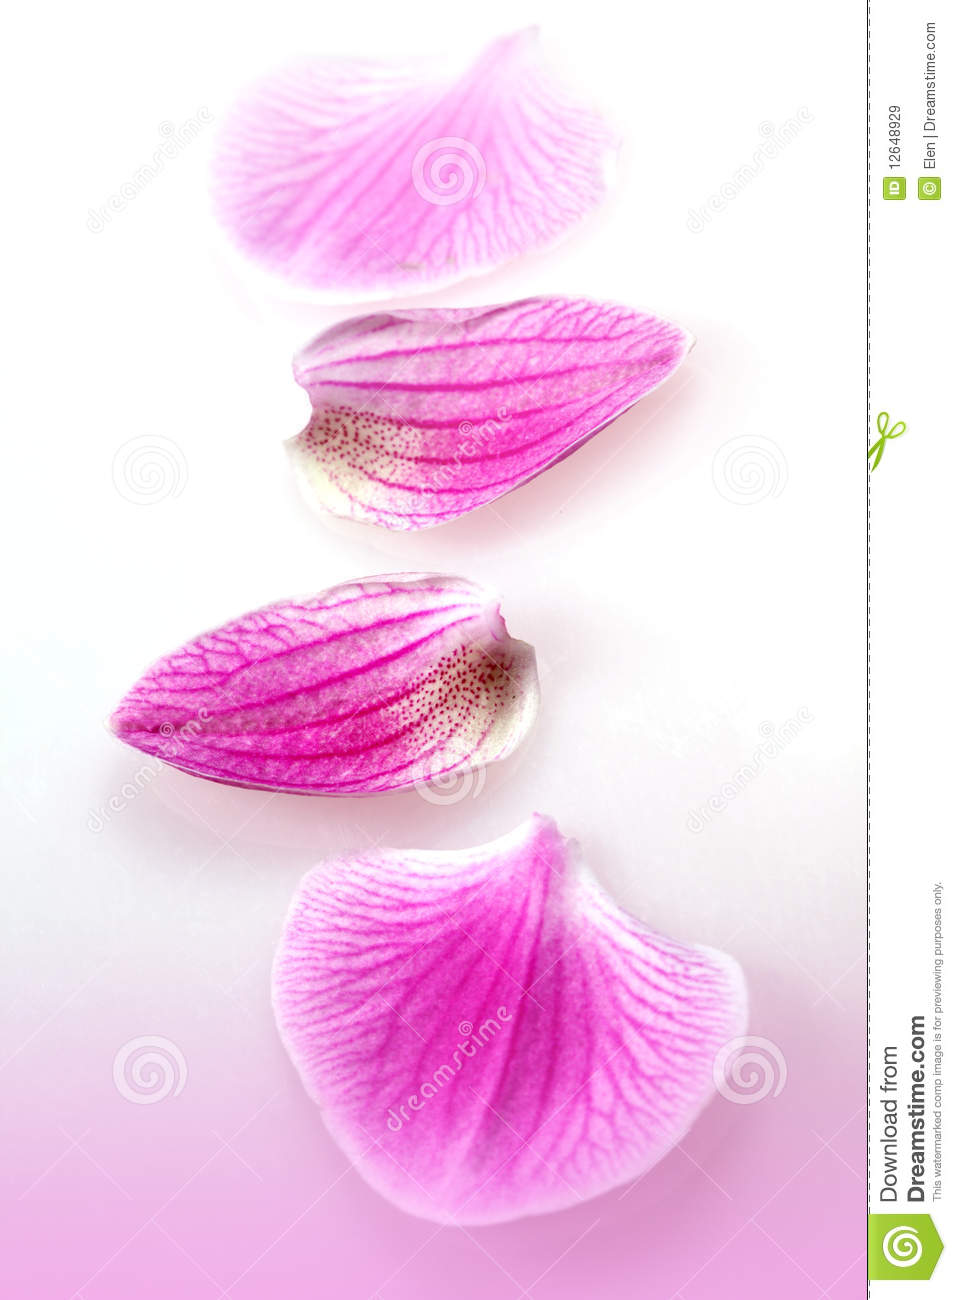 Pink Petals Of Flower Orchid Stock Image Image Of Botany